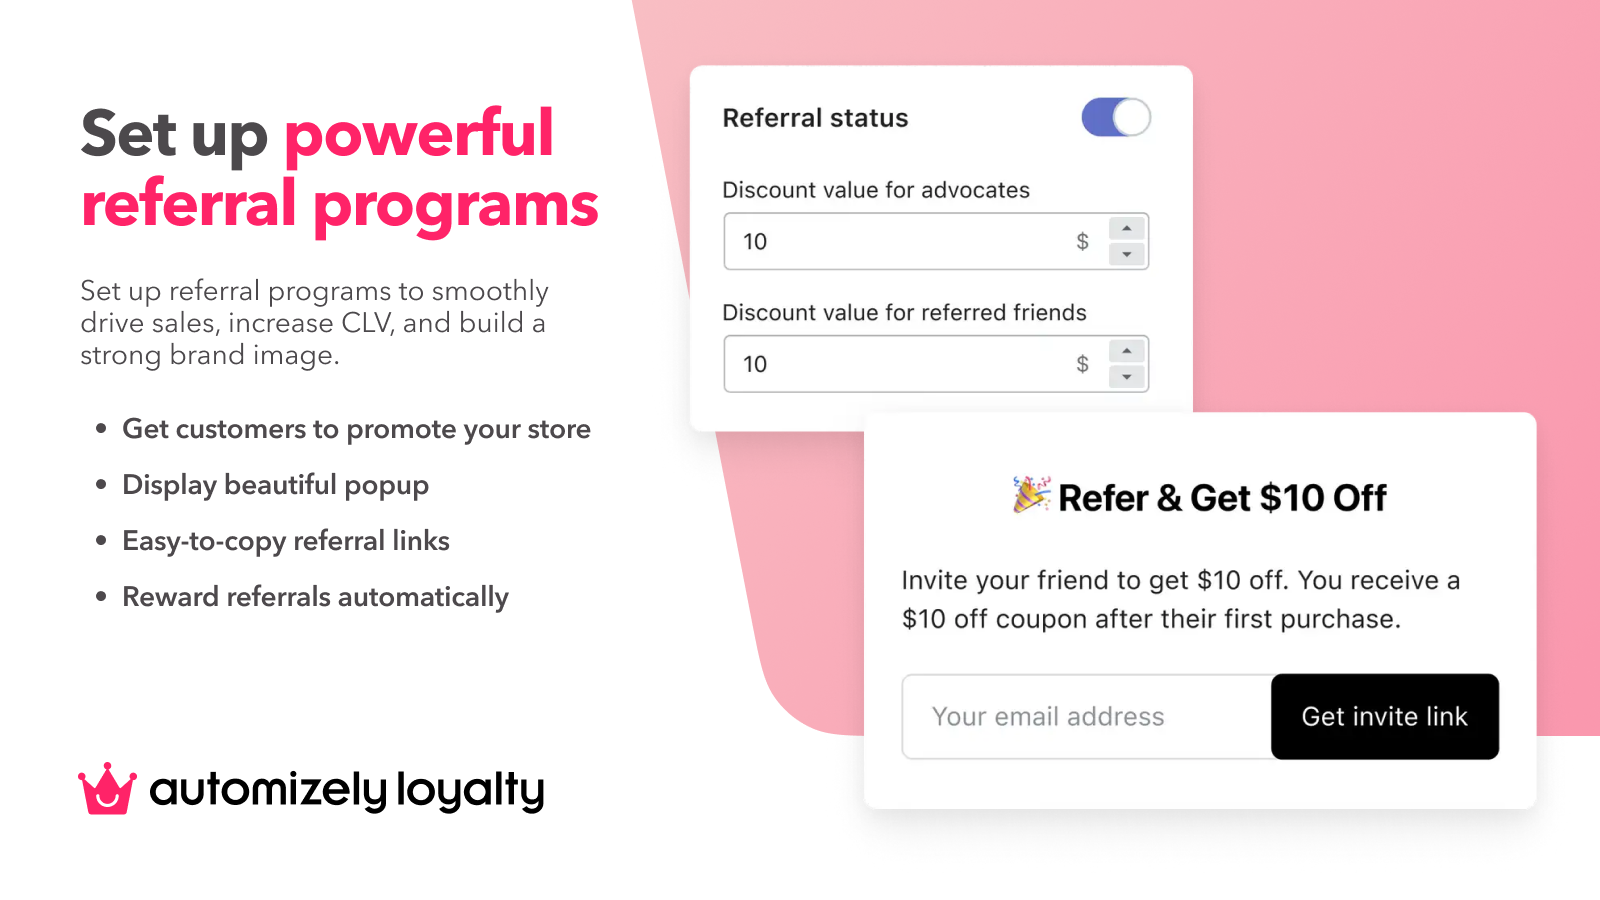 Set Up Powerful Referral Programs